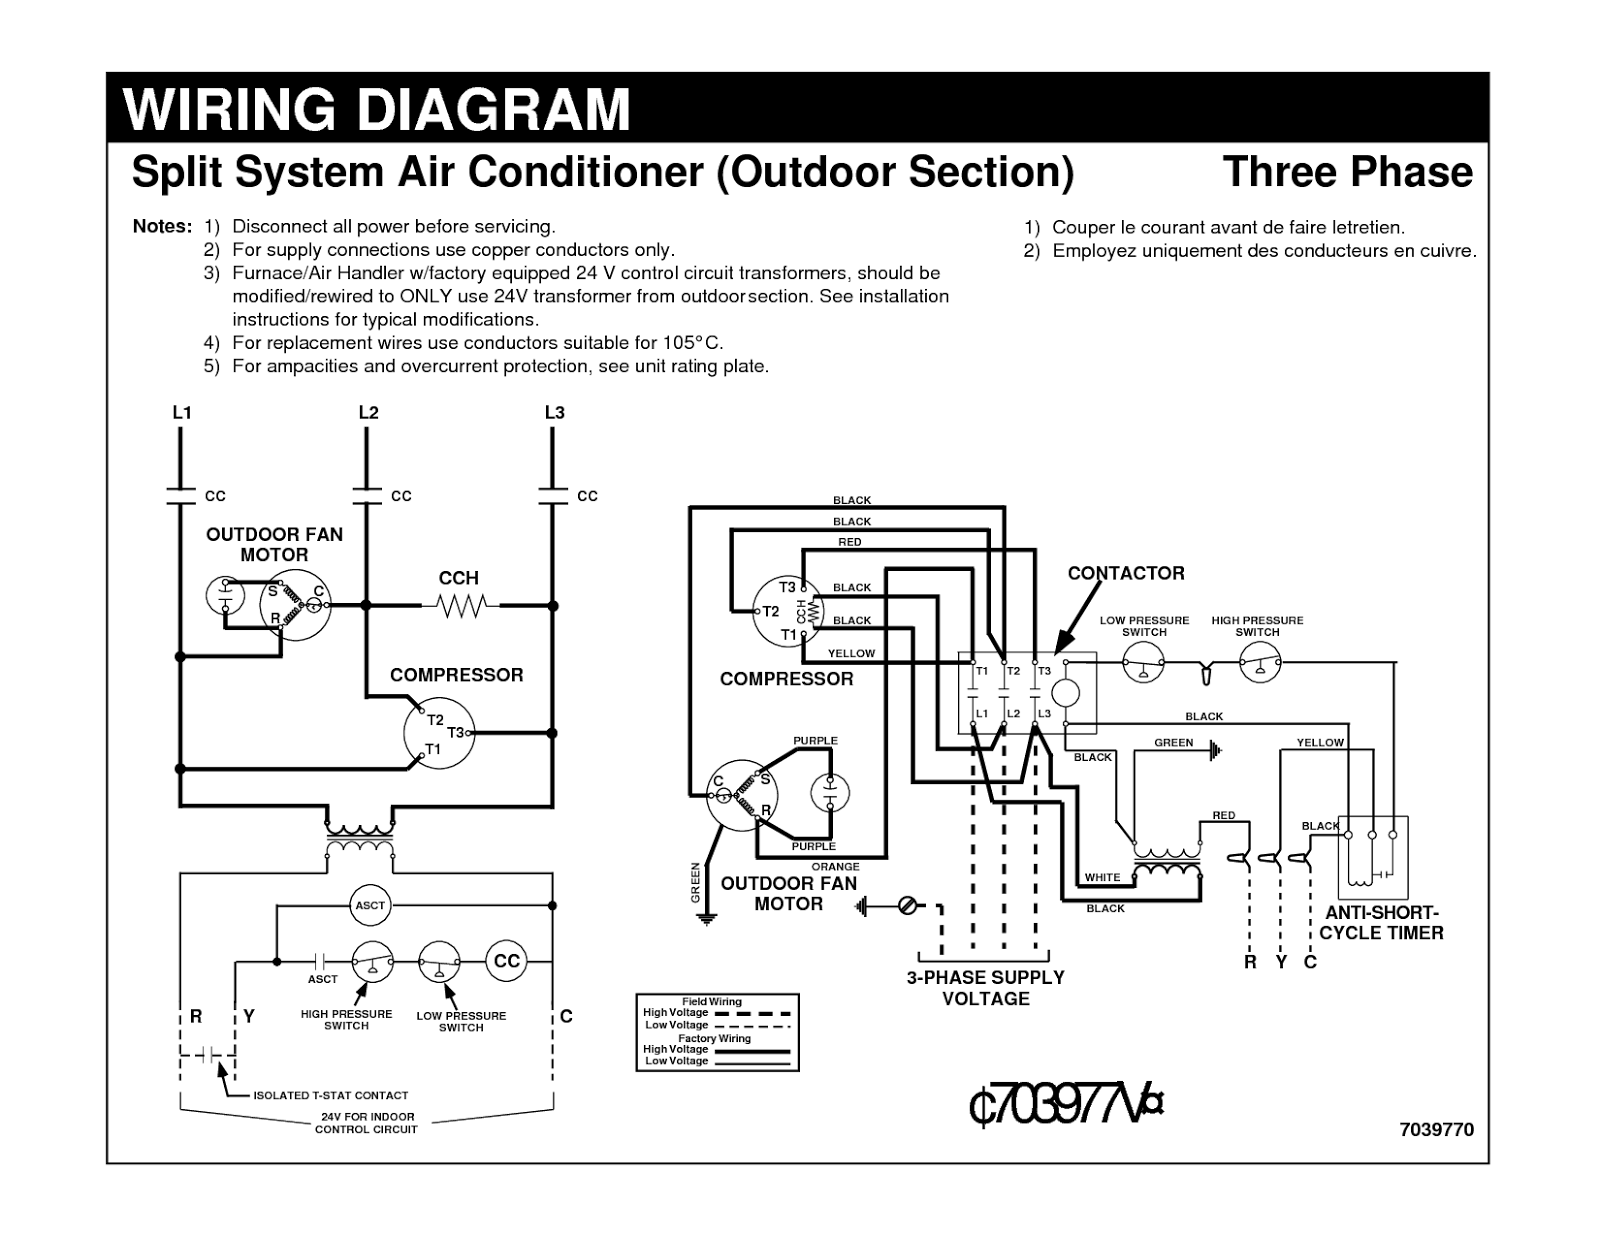 central ac wiring diagram electrical    wiring       diagrams    for air conditioning systems  electrical    wiring       diagrams    for air conditioning systems